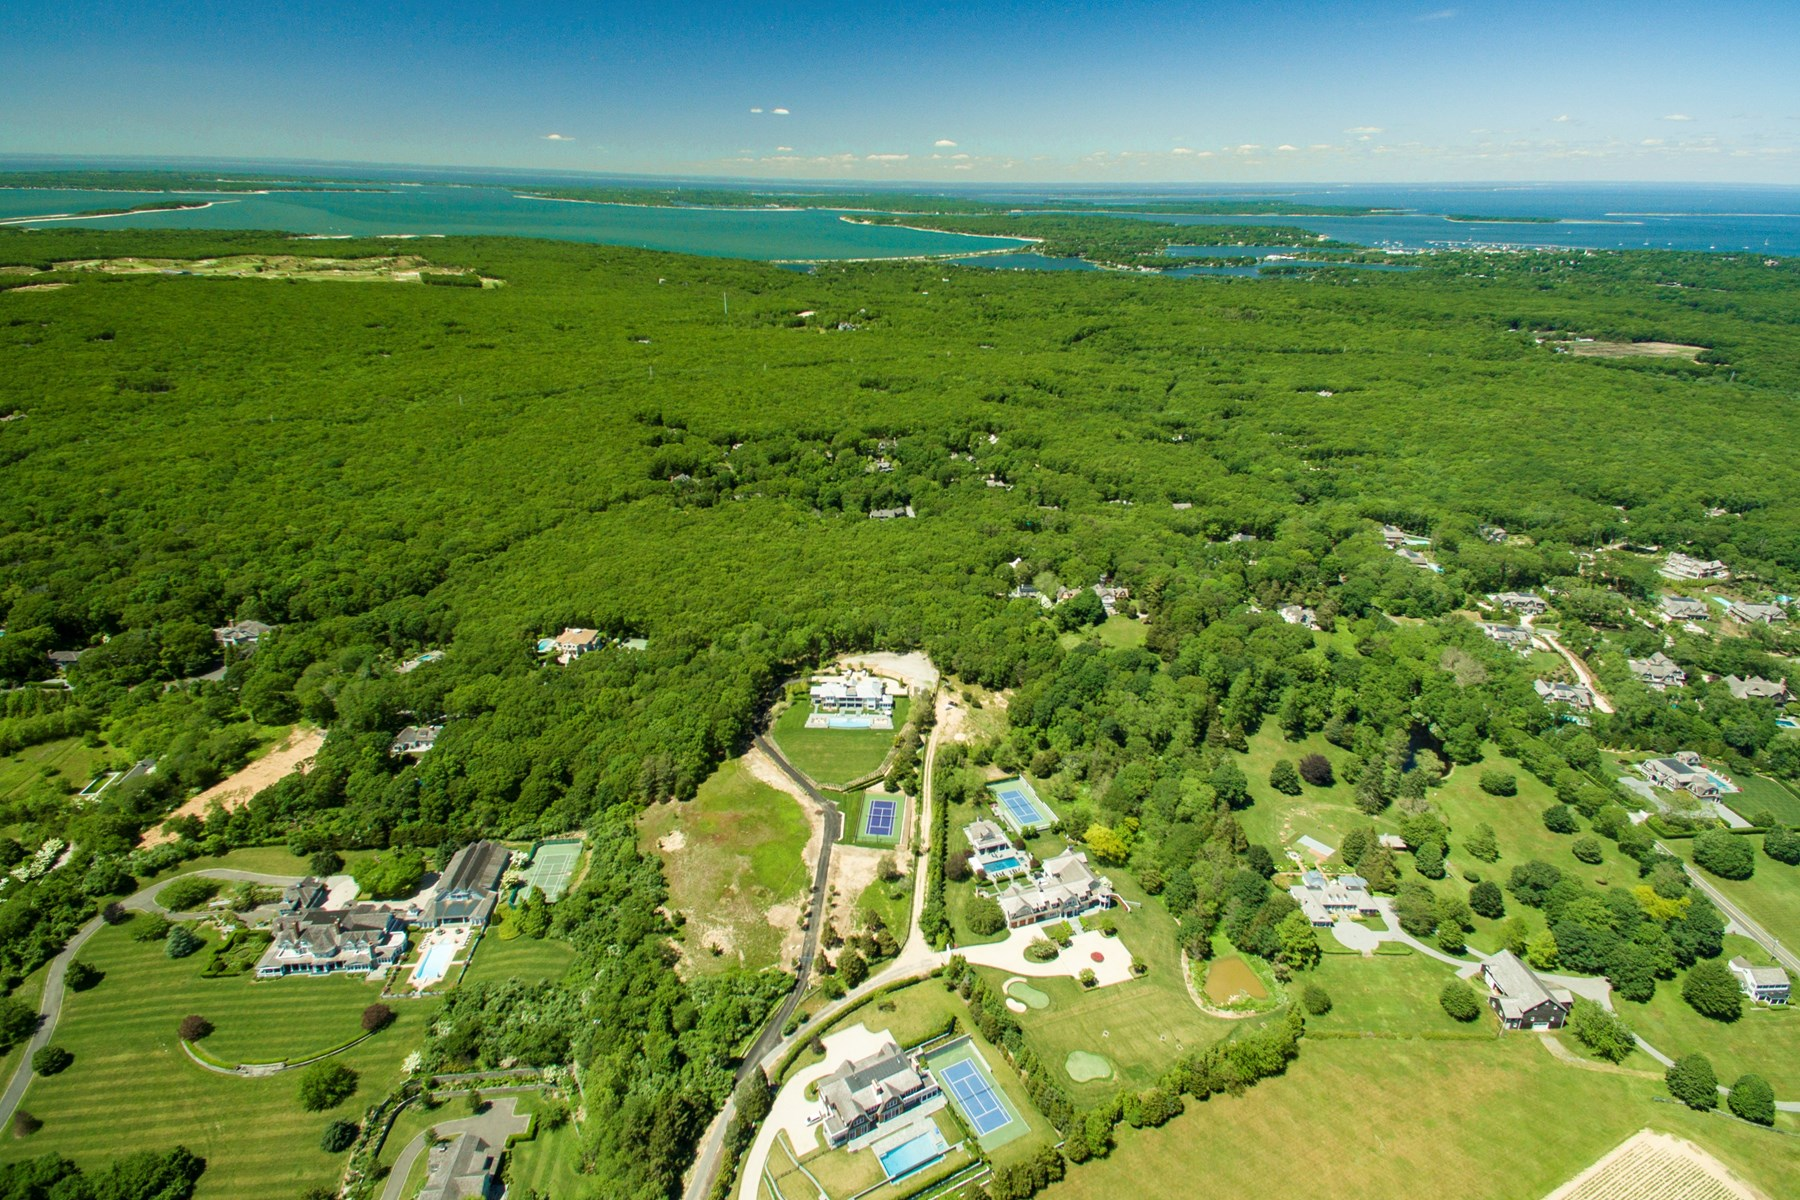 Terreno por un Venta en 96 Day Lily Lane, Bridgehampton, NY Bridgehampton North, Bridgehampton, Nueva York, 11932 Estados Unidos